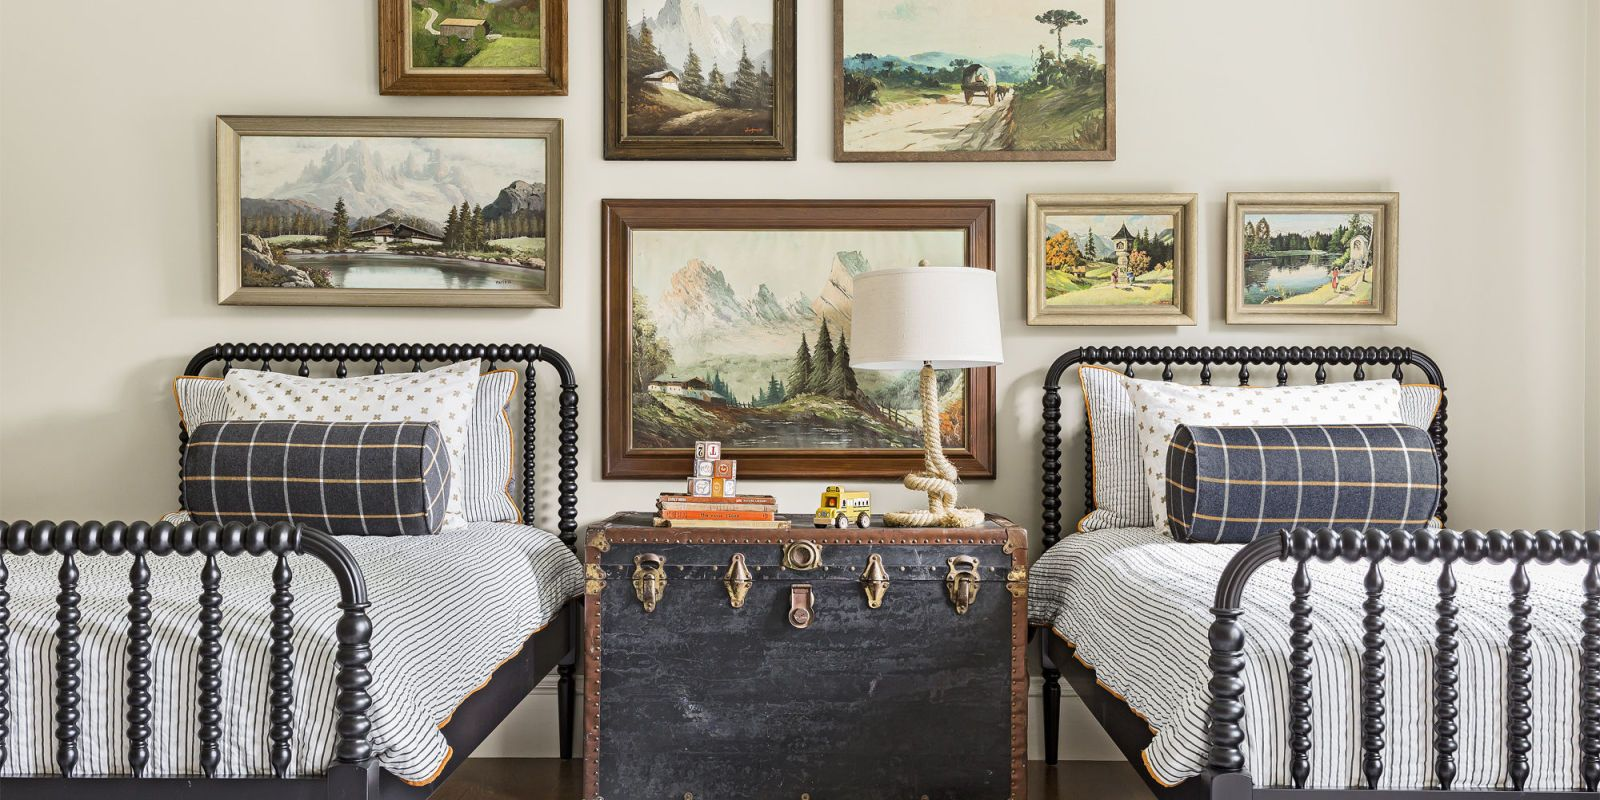 Charmant Get Inspired With Dozens Of Beautiful Bedroom Decorating Ideas.